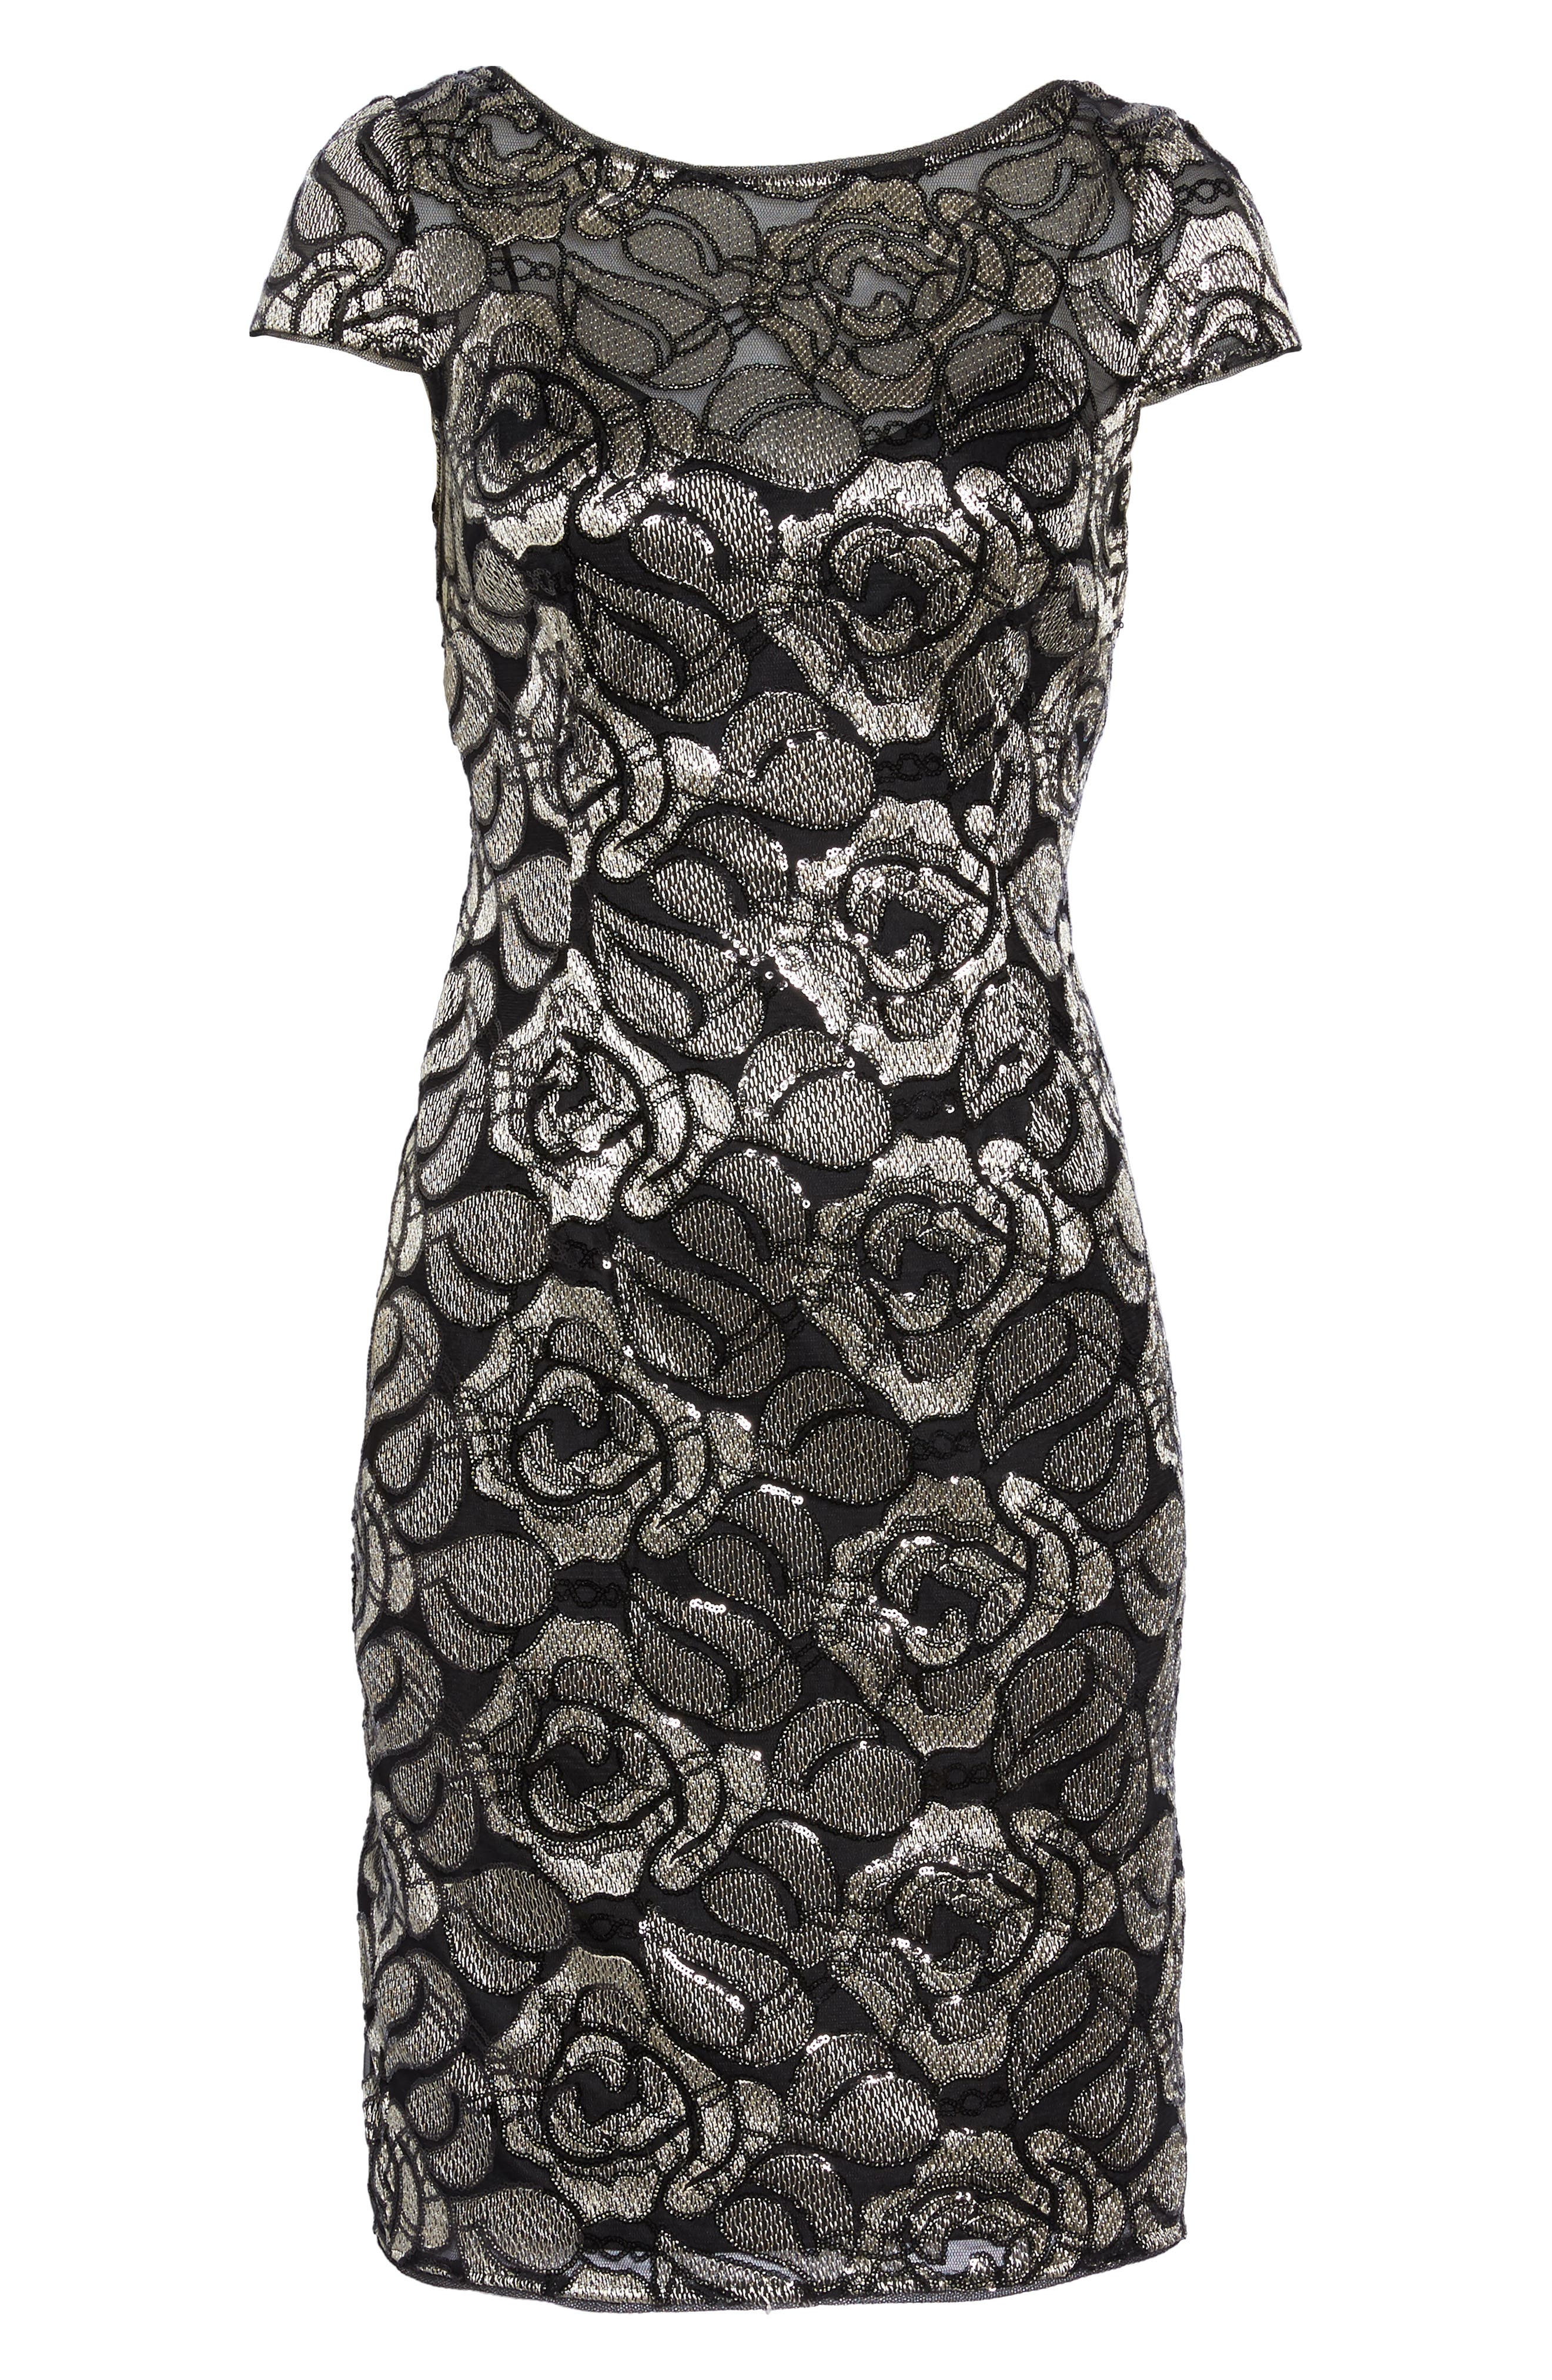 Sequin Embroidered Rose Cocktail Dress,                             Alternate thumbnail 6, color,                             Black/Gold